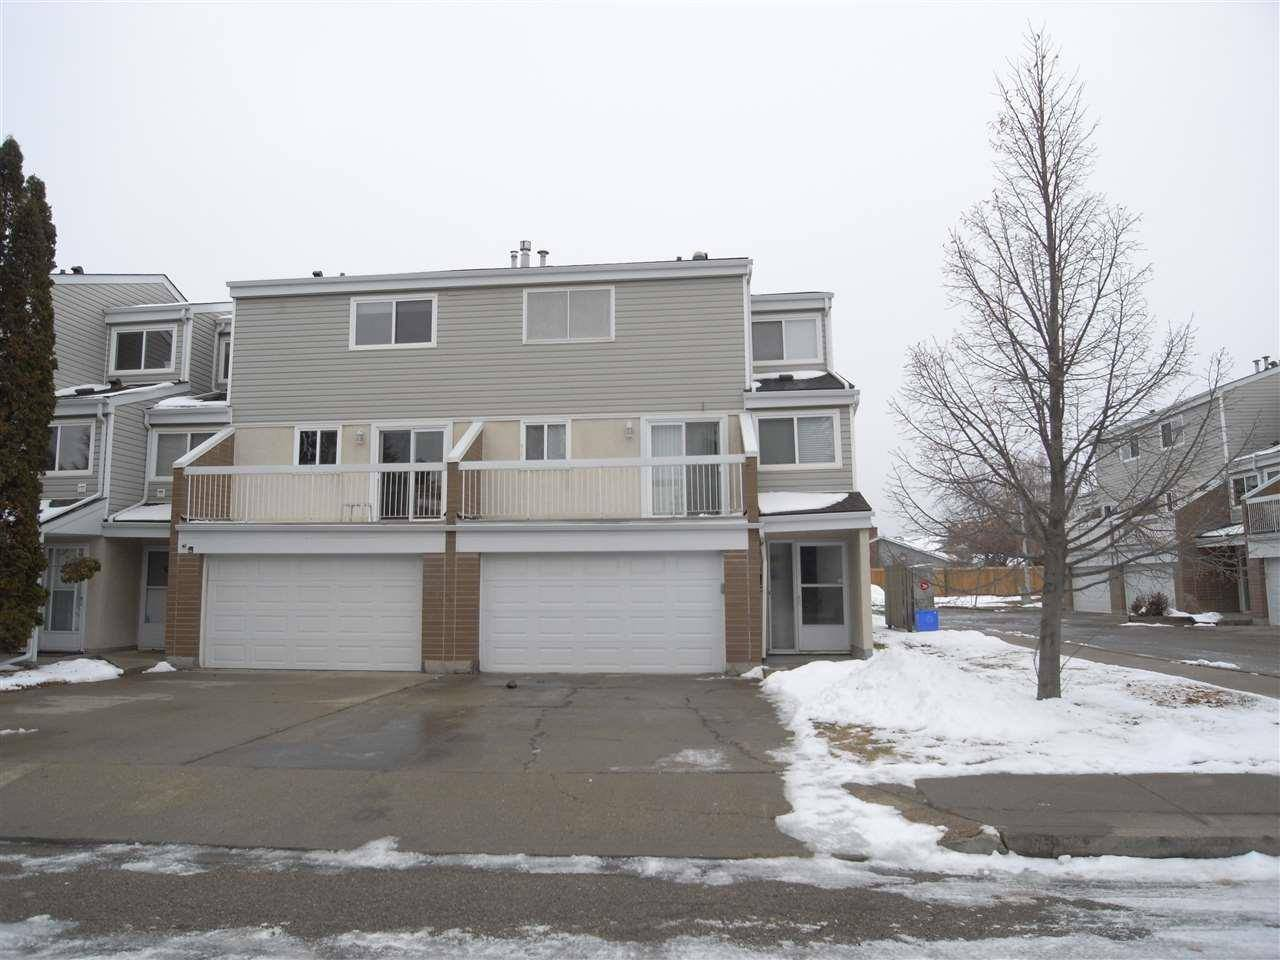 Townhouse for sale at 10780 31 Ave Nw Edmonton Alberta - MLS: E4179932